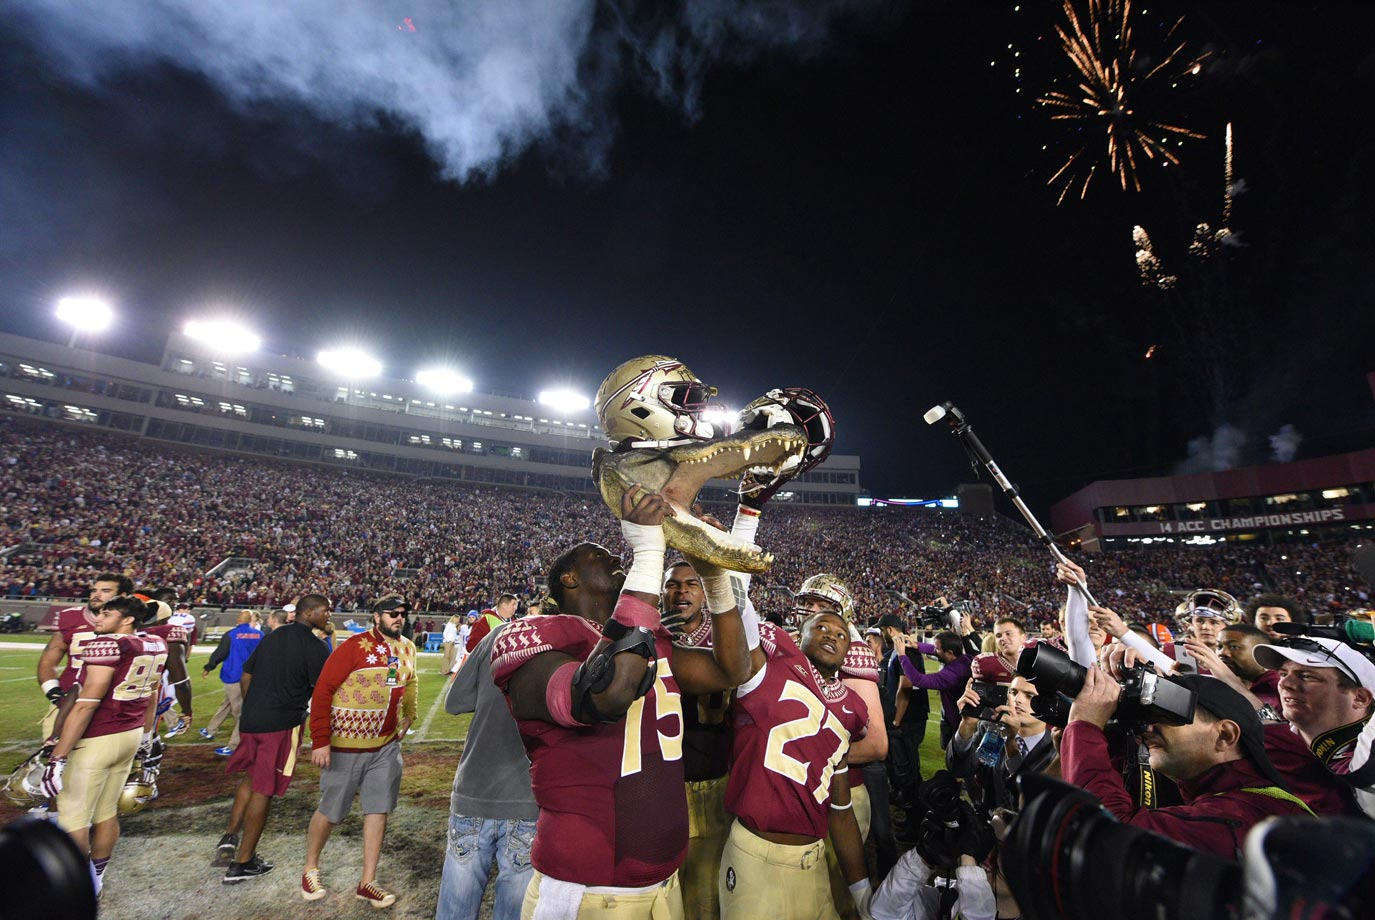 Despite four interceptions from Winston, the Seminoles hung on to beat their rivals. Florida kicker Austin Hardin missed two go-ahead field goals in the second half, and quarterback Treon Harris failed to lead the Gators to a game-winning touchdown on their final drive.